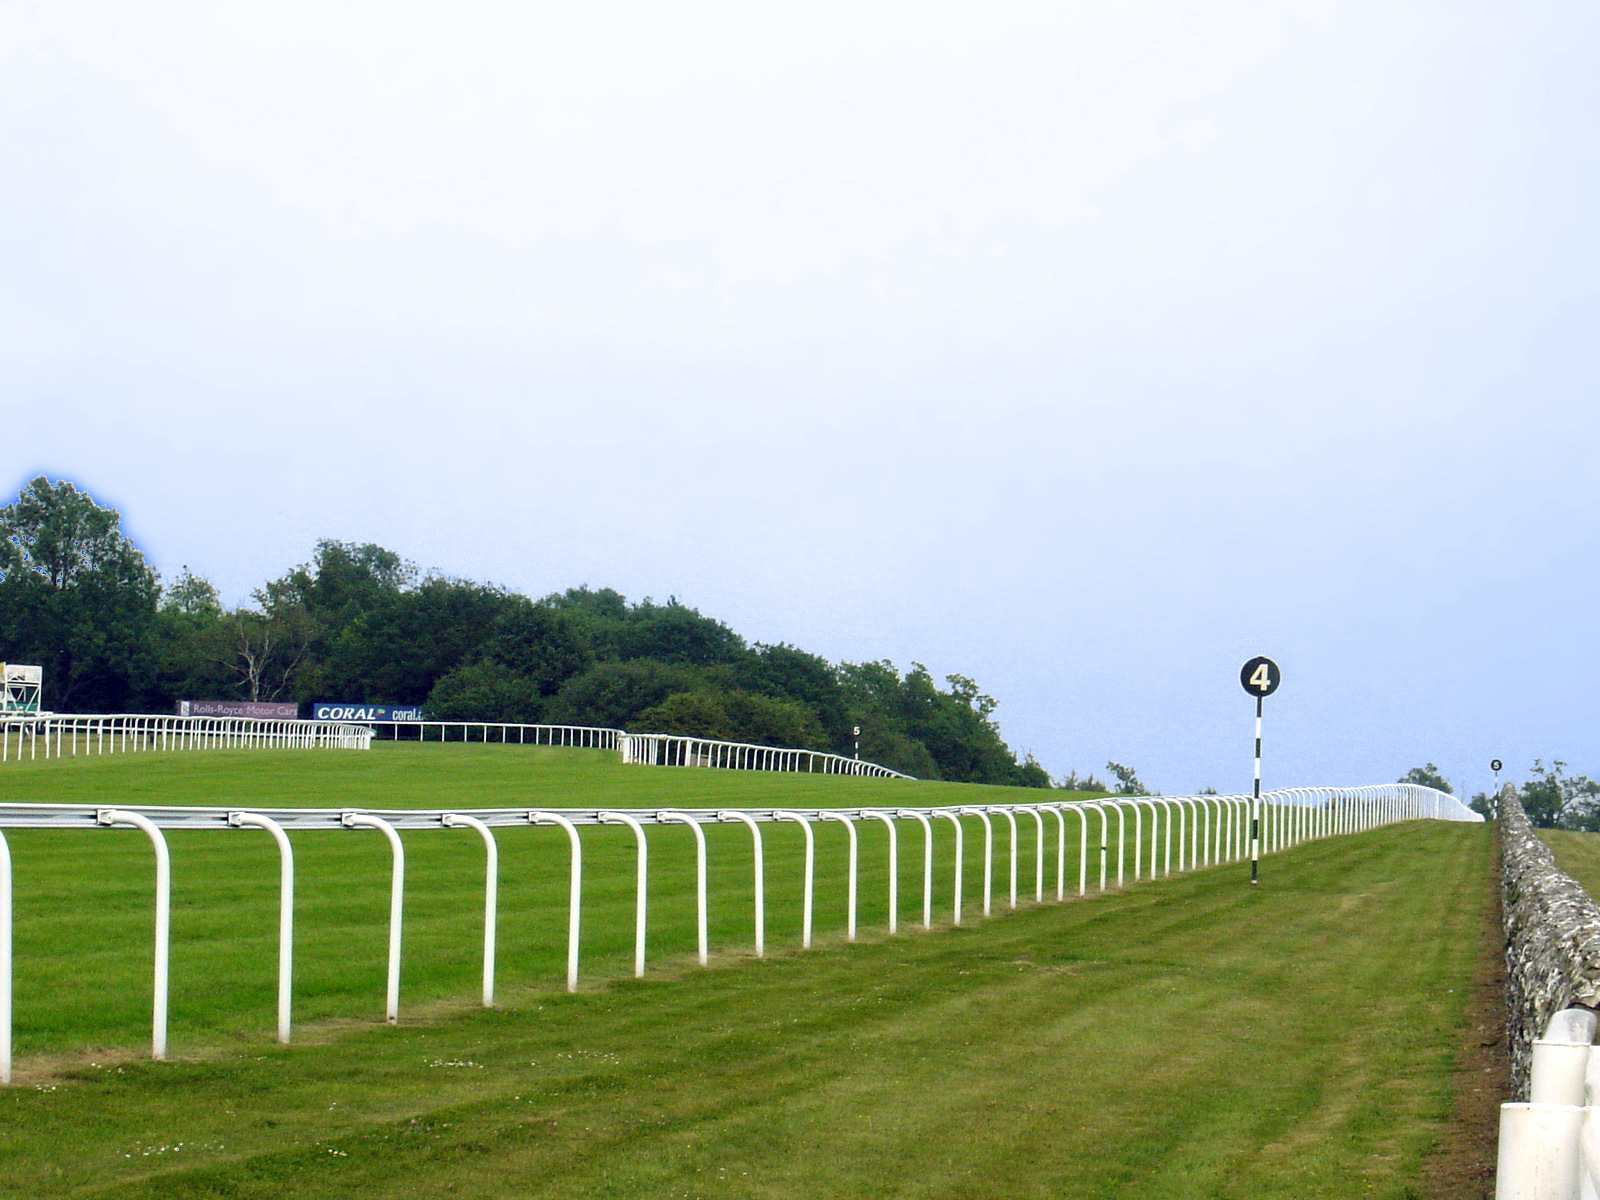 Goodwood Racecourse, West Sussex, England